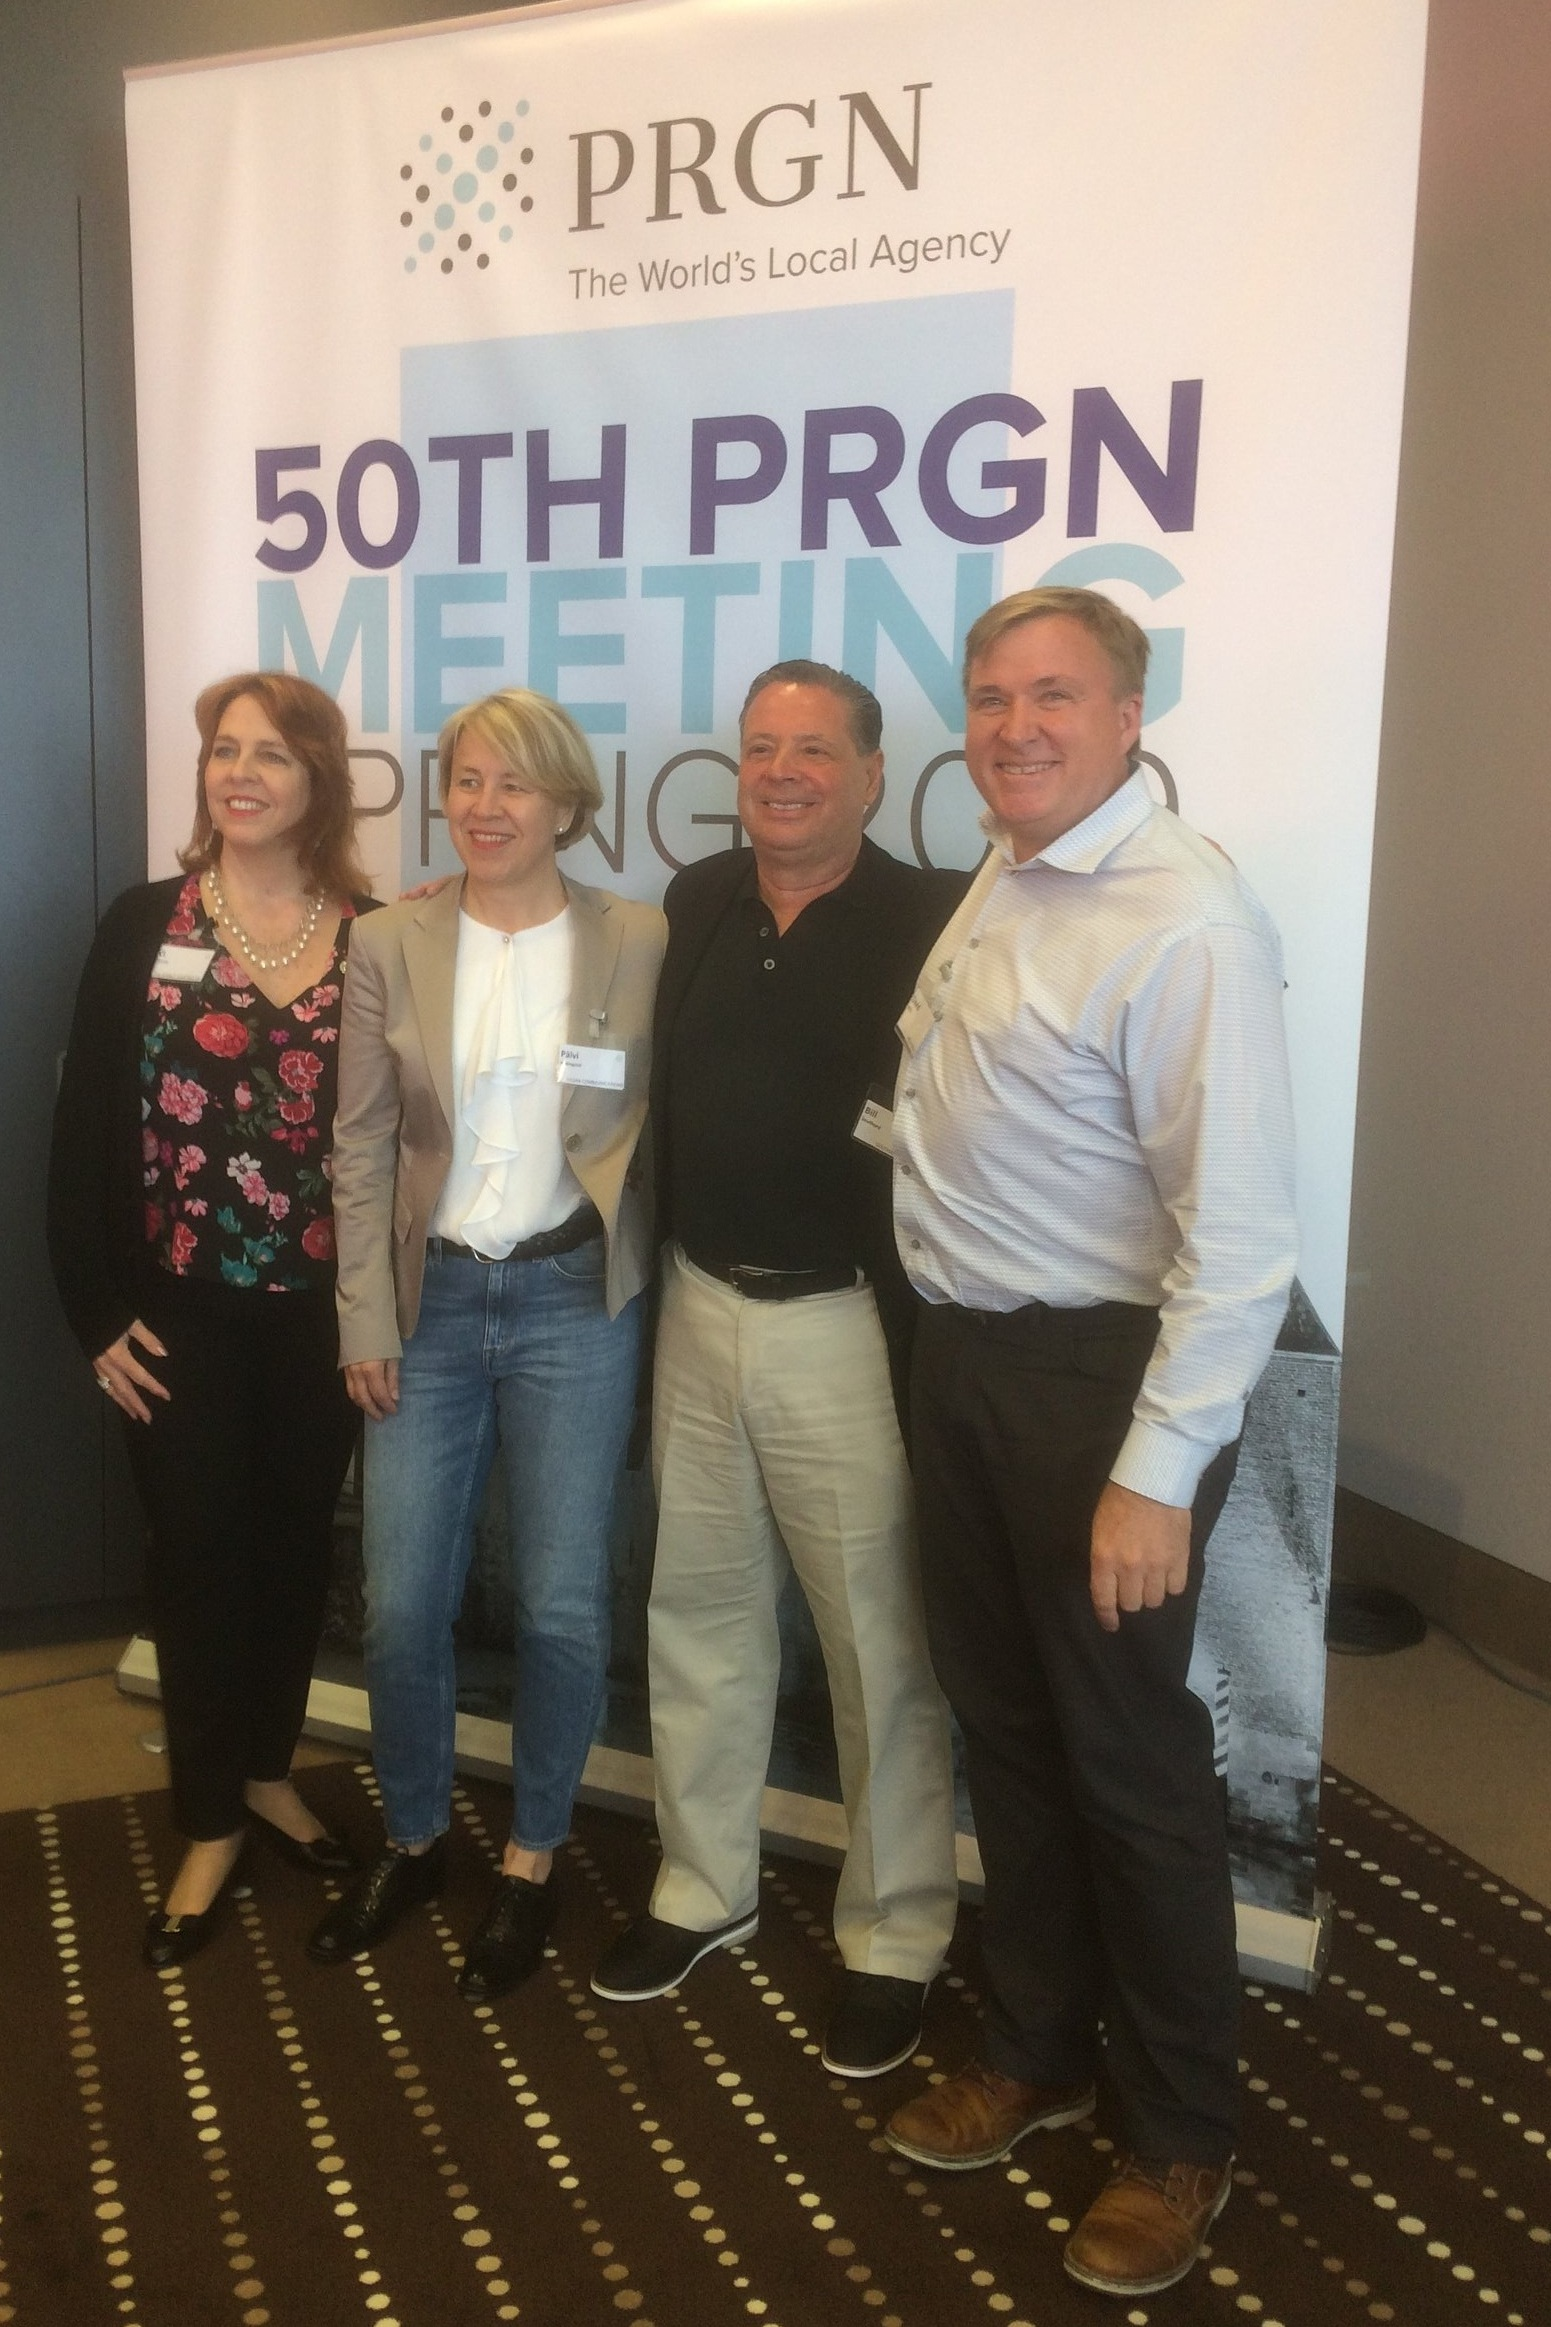 Left to right: C.L. Conroy, president & CEO of The Conroy Martinez Group; Päivi Holmquist, managing director of hasan communications; Bill Southard, founder, chief executive officer of Southard Communications and David Wills, senior vice president of Media Profile.